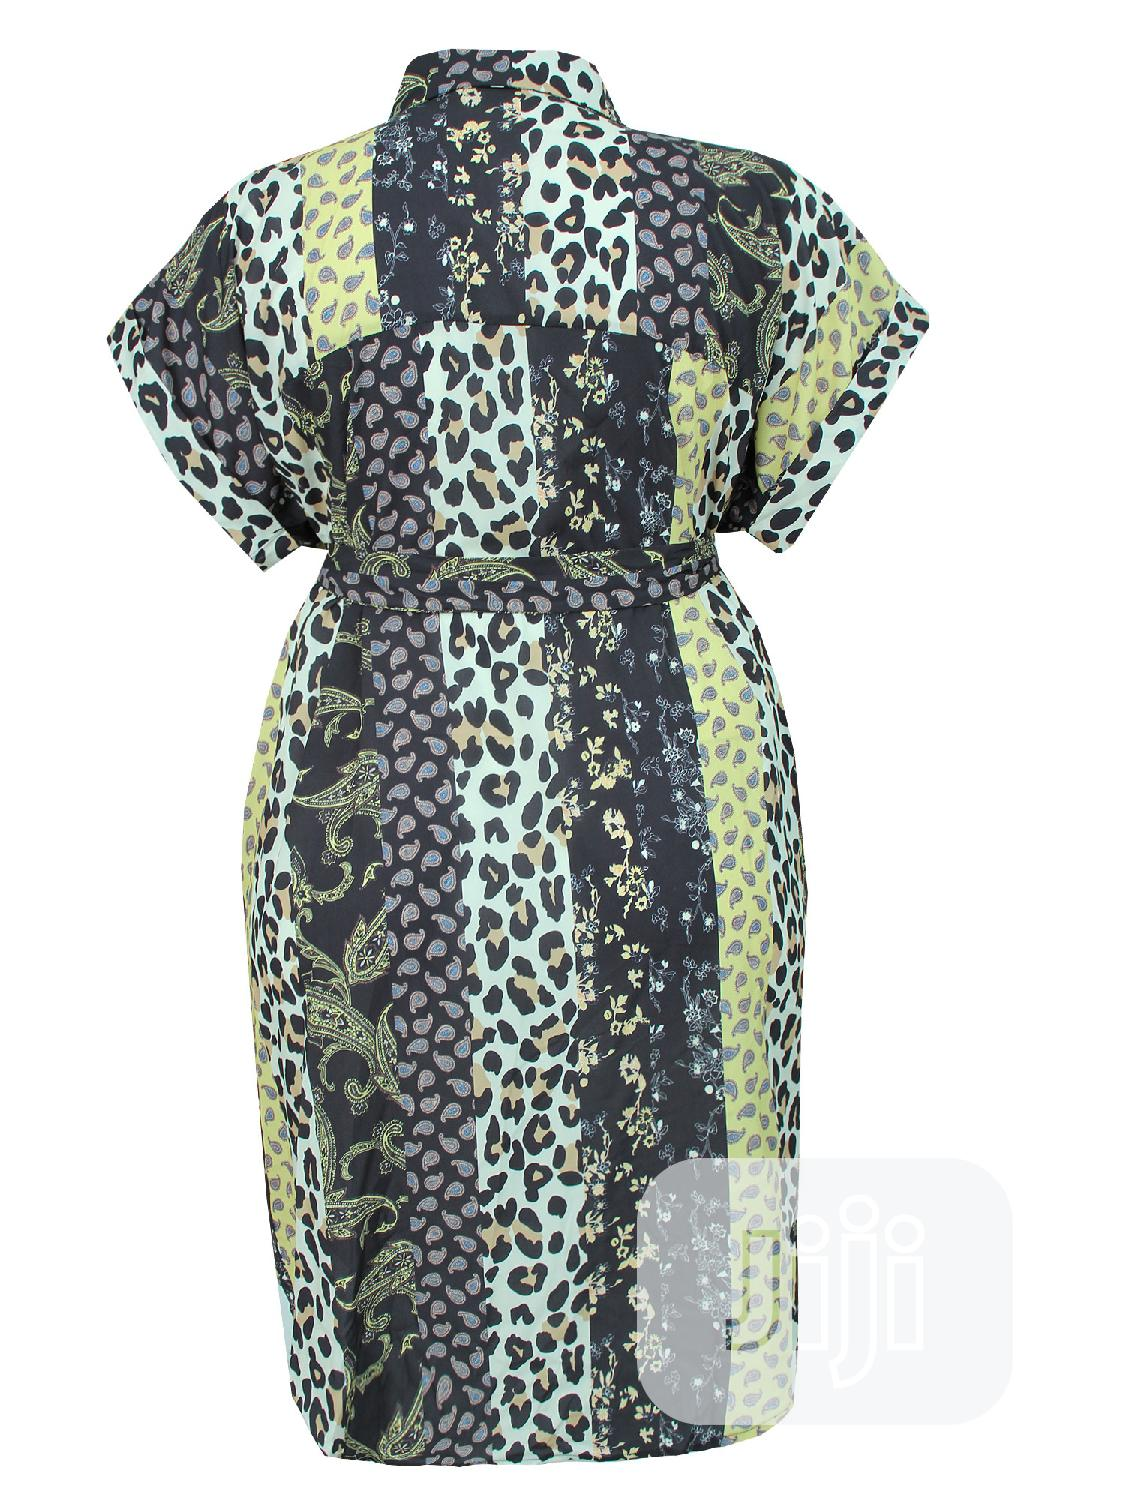 Plus Size Dress(Luceez) | Clothing for sale in Ikeja, Lagos State, Nigeria